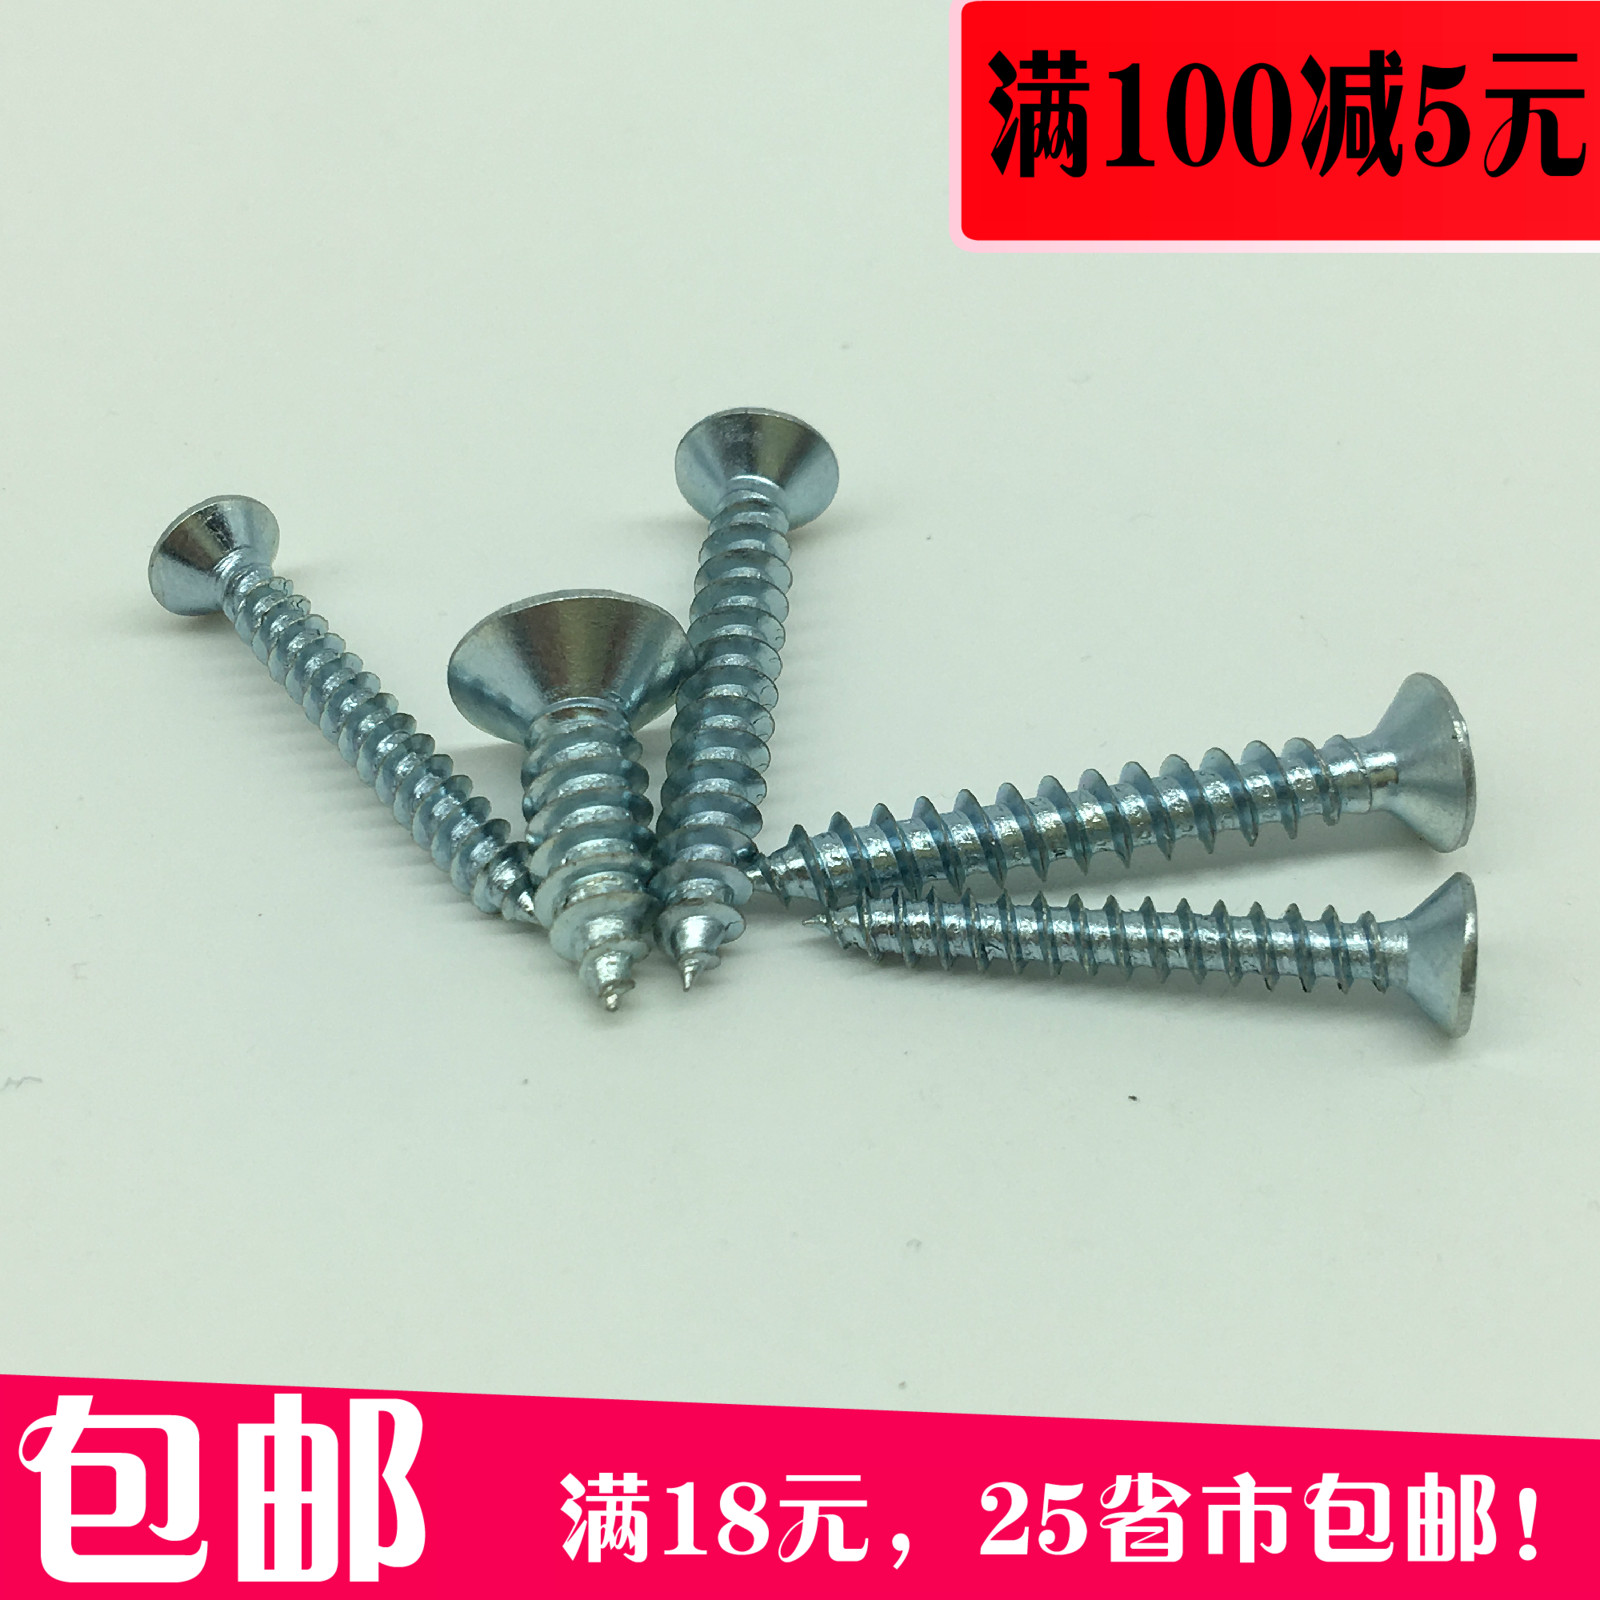 Shanghai production of high strength flat head self tapping screws phillips countersunk head self tapping screws st2.2 st2.9 st3.5